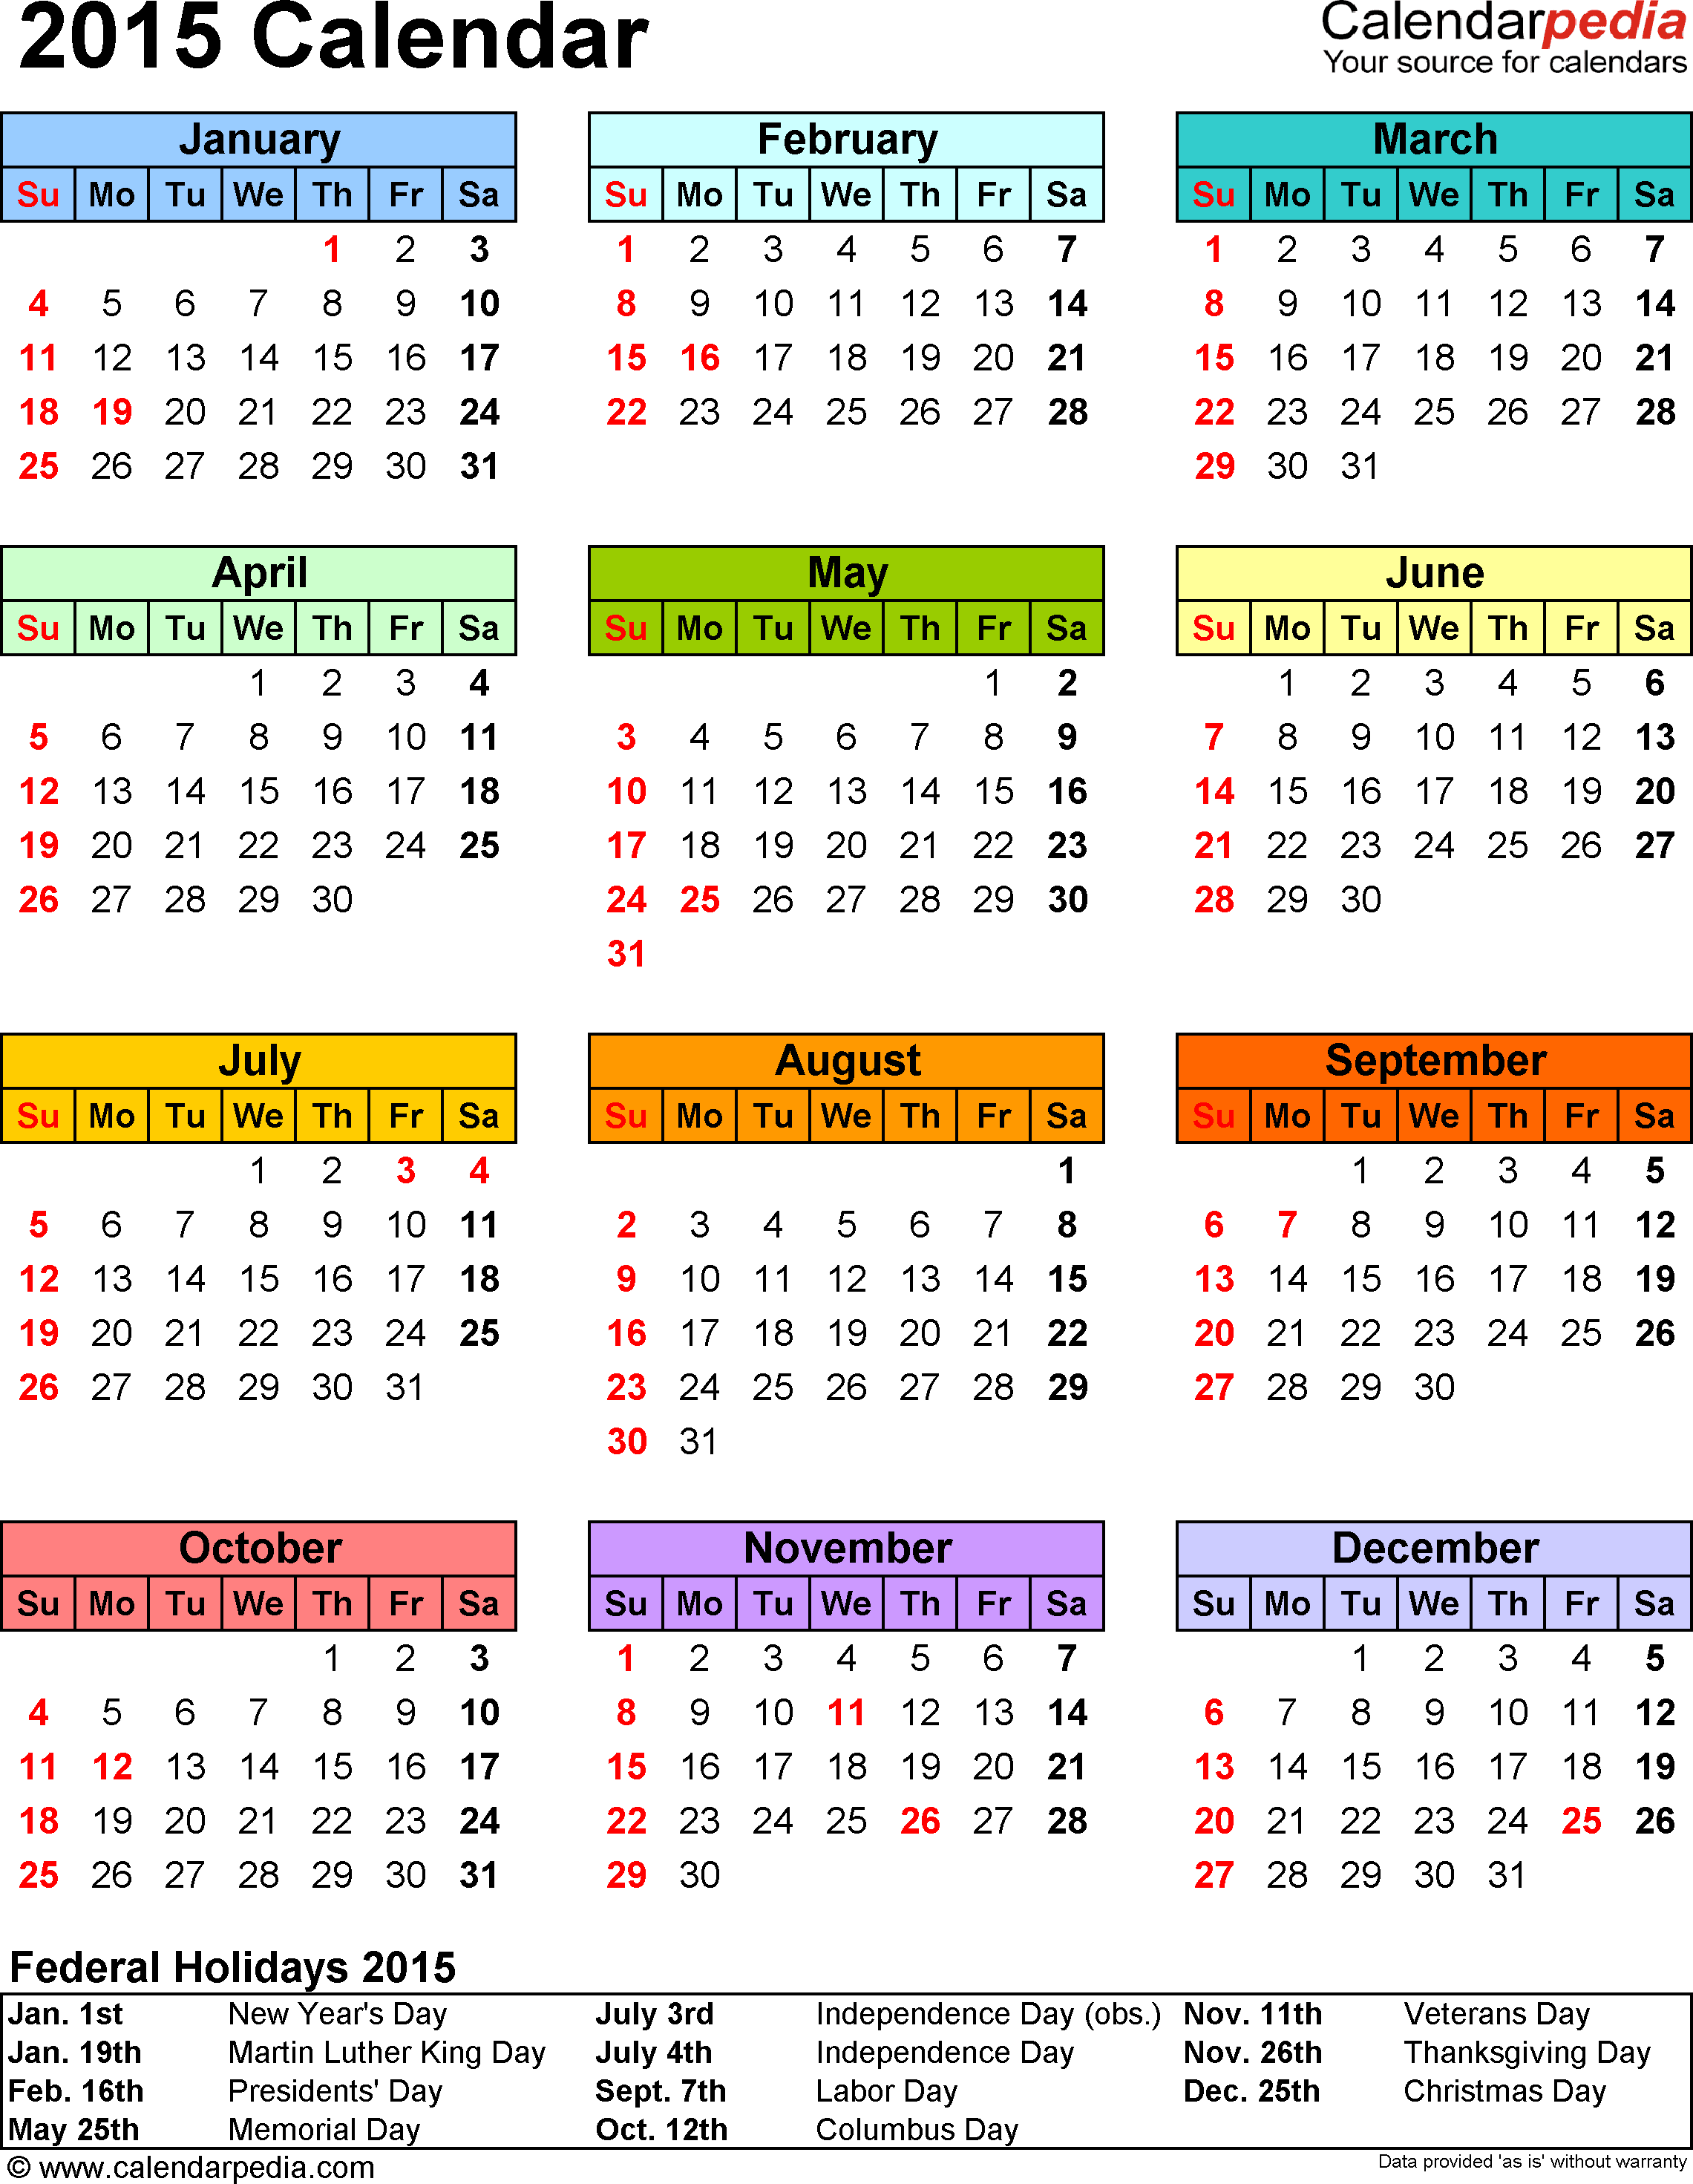 Template 13: 2015 Calendar For Excel, 1 Page, Portrait Orientation, In Color